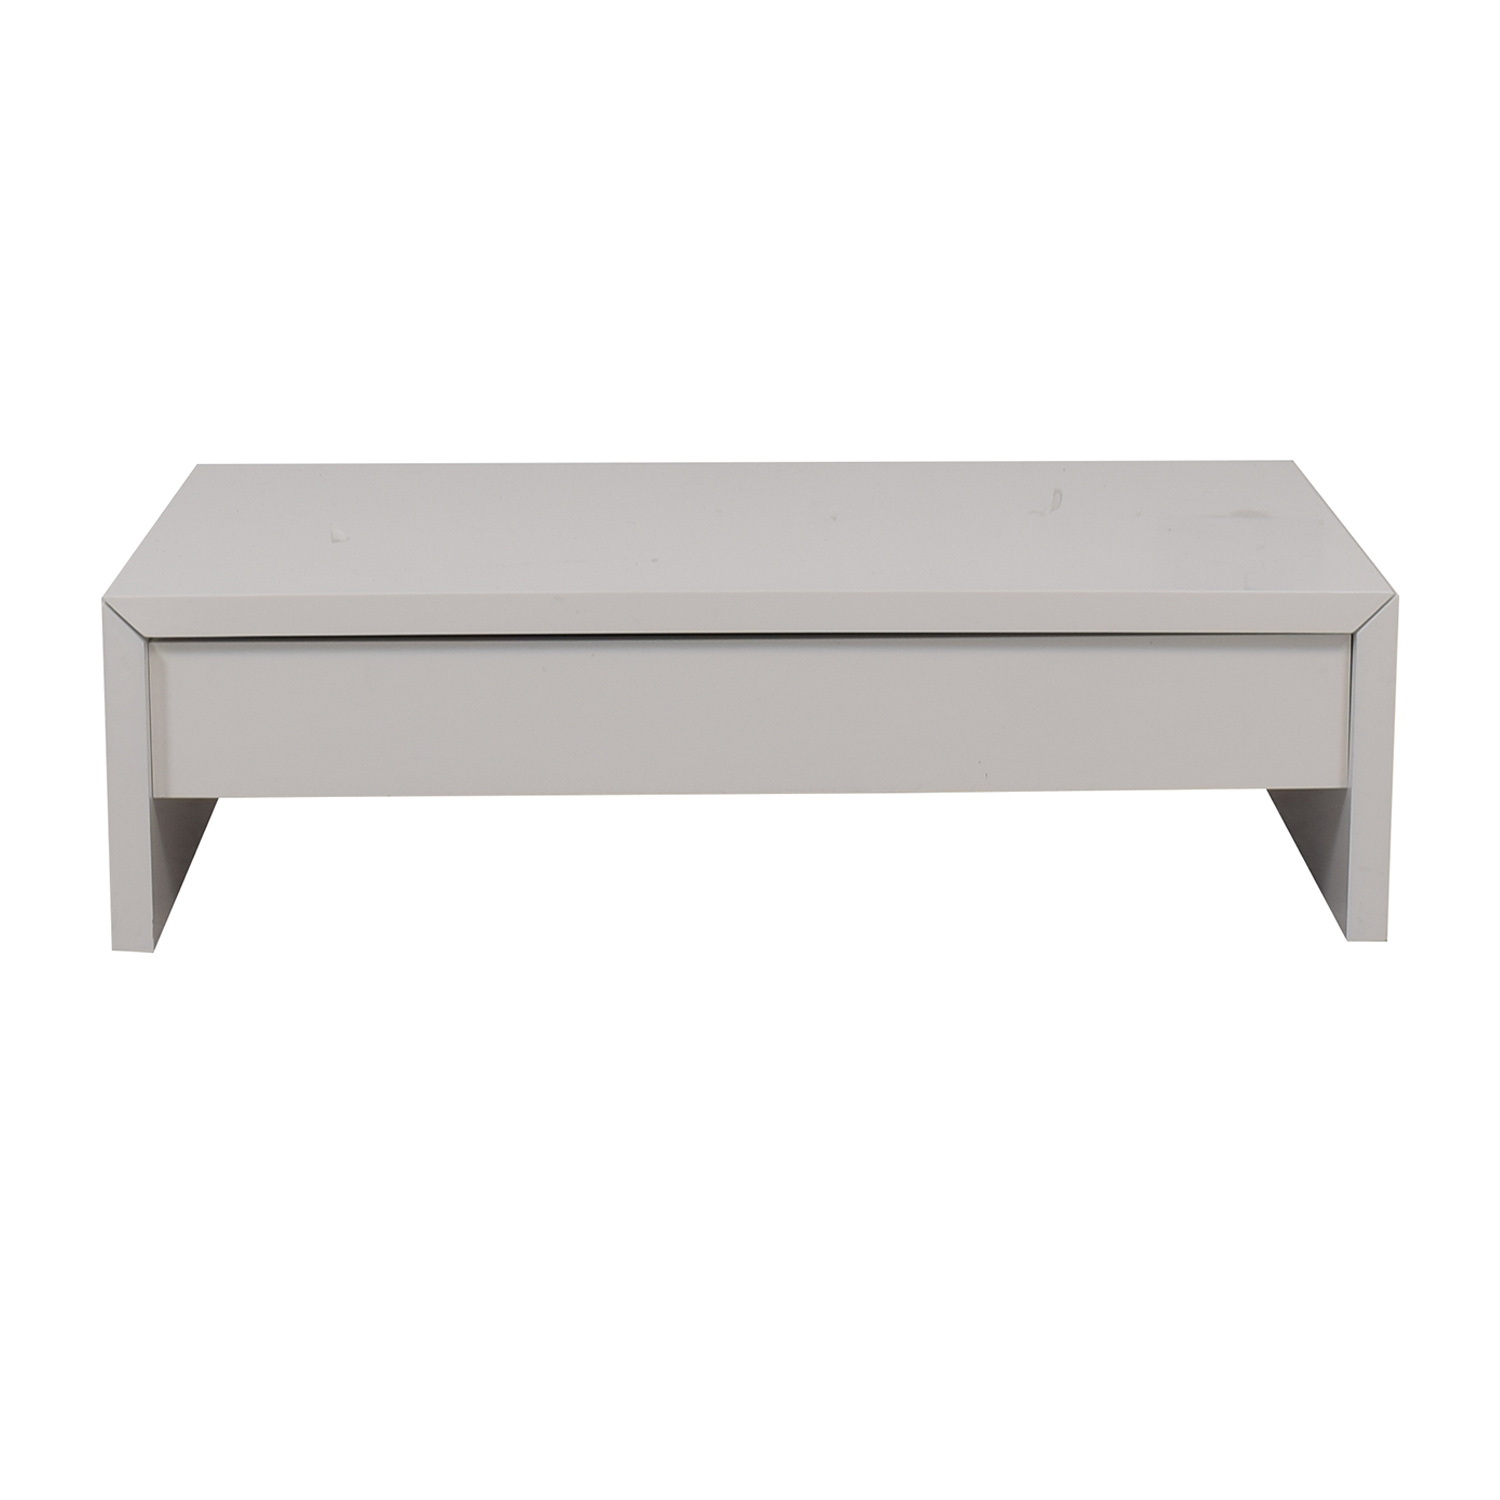 shop Safavieh Safavieh White Coffee Table with Lift Top Storage online